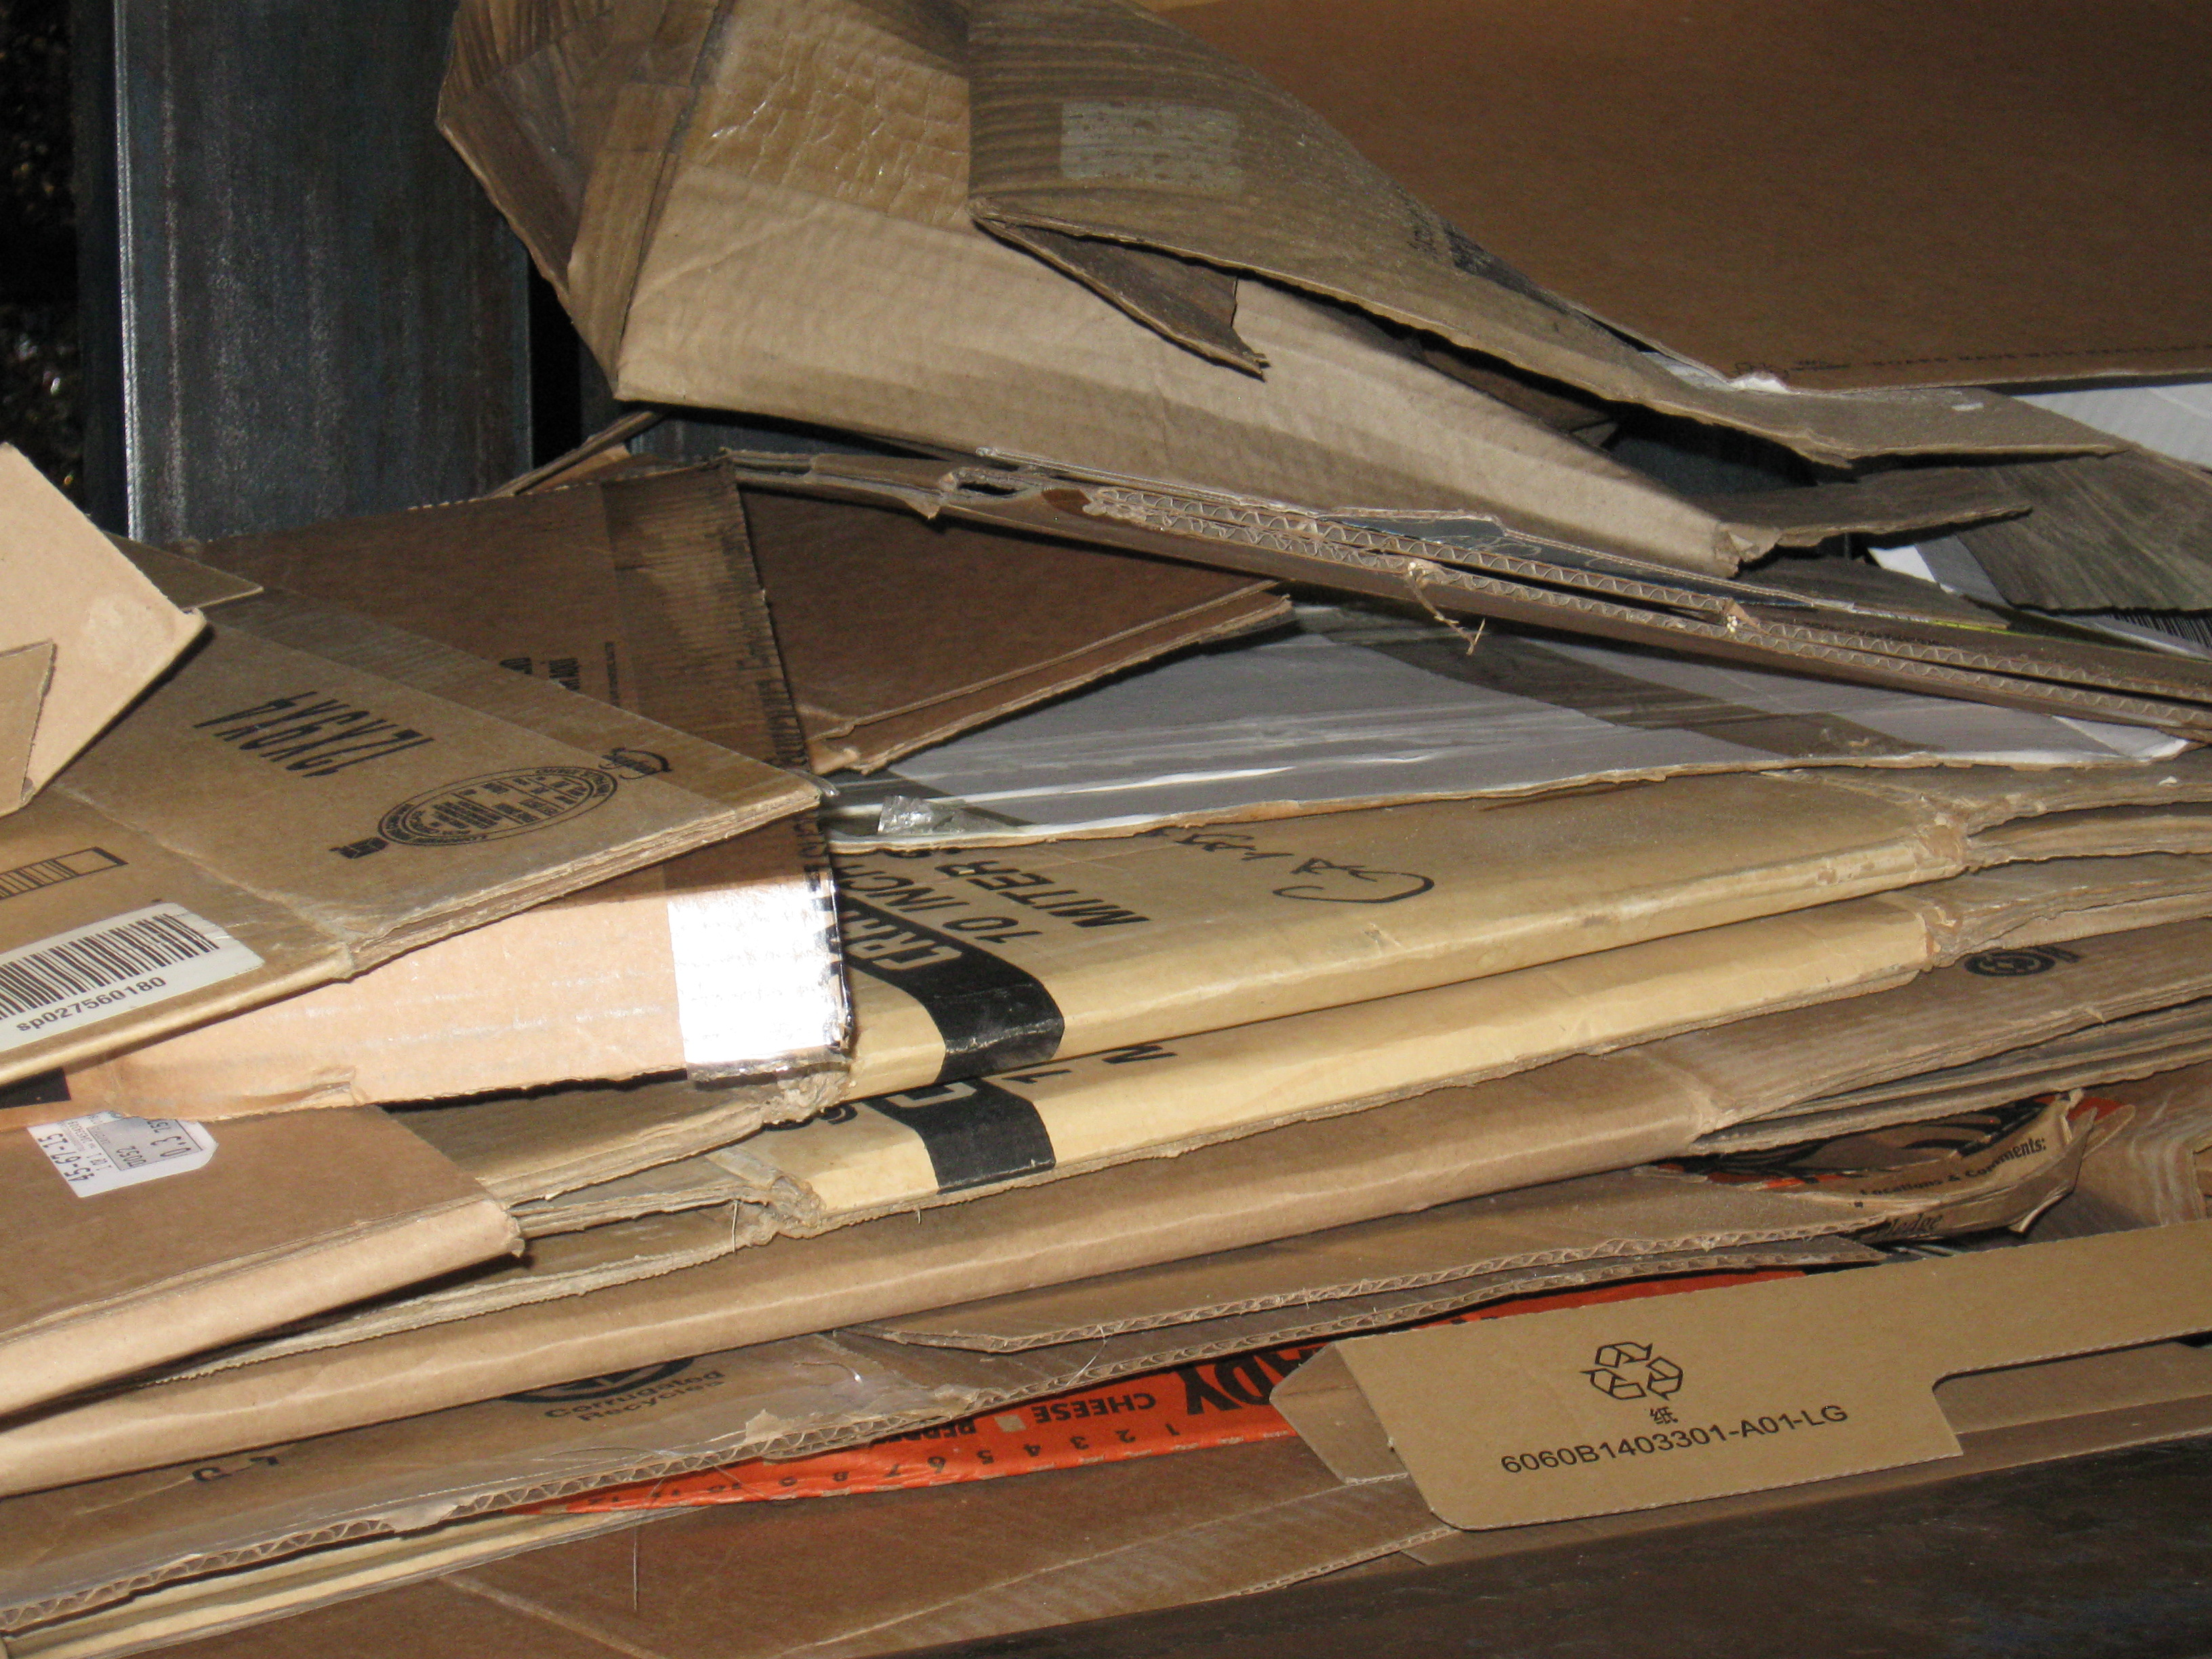 Cardboard - heavy corrugated boxes and brown paper bags. Remove packing and bags.